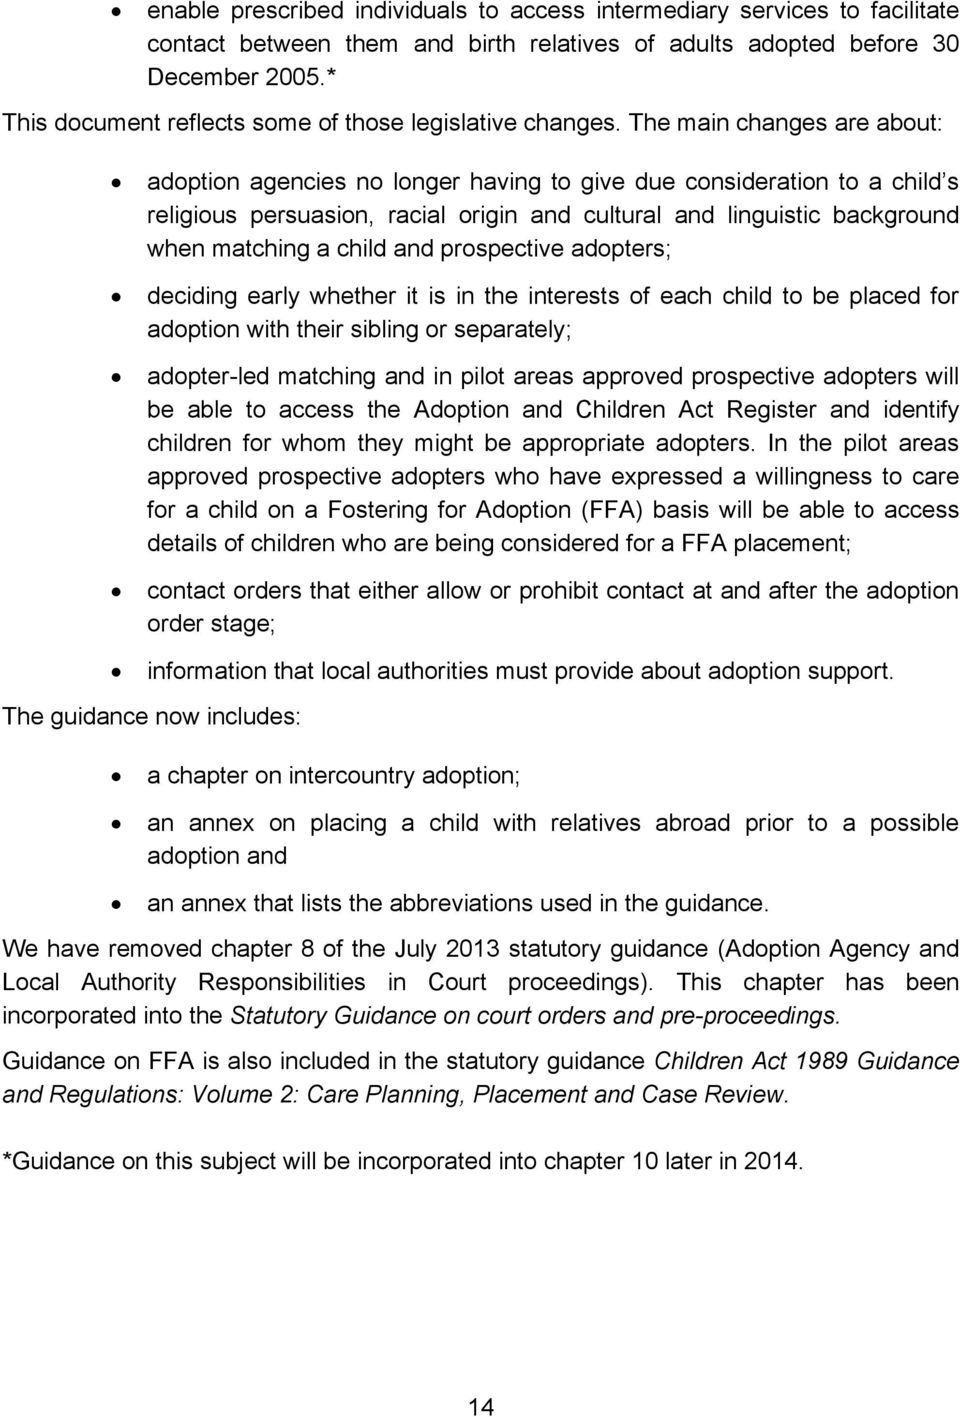 The main changes are about: adoption agencies no longer having to give due consideration to a child s religious persuasion, racial origin and cultural and linguistic background when matching a child